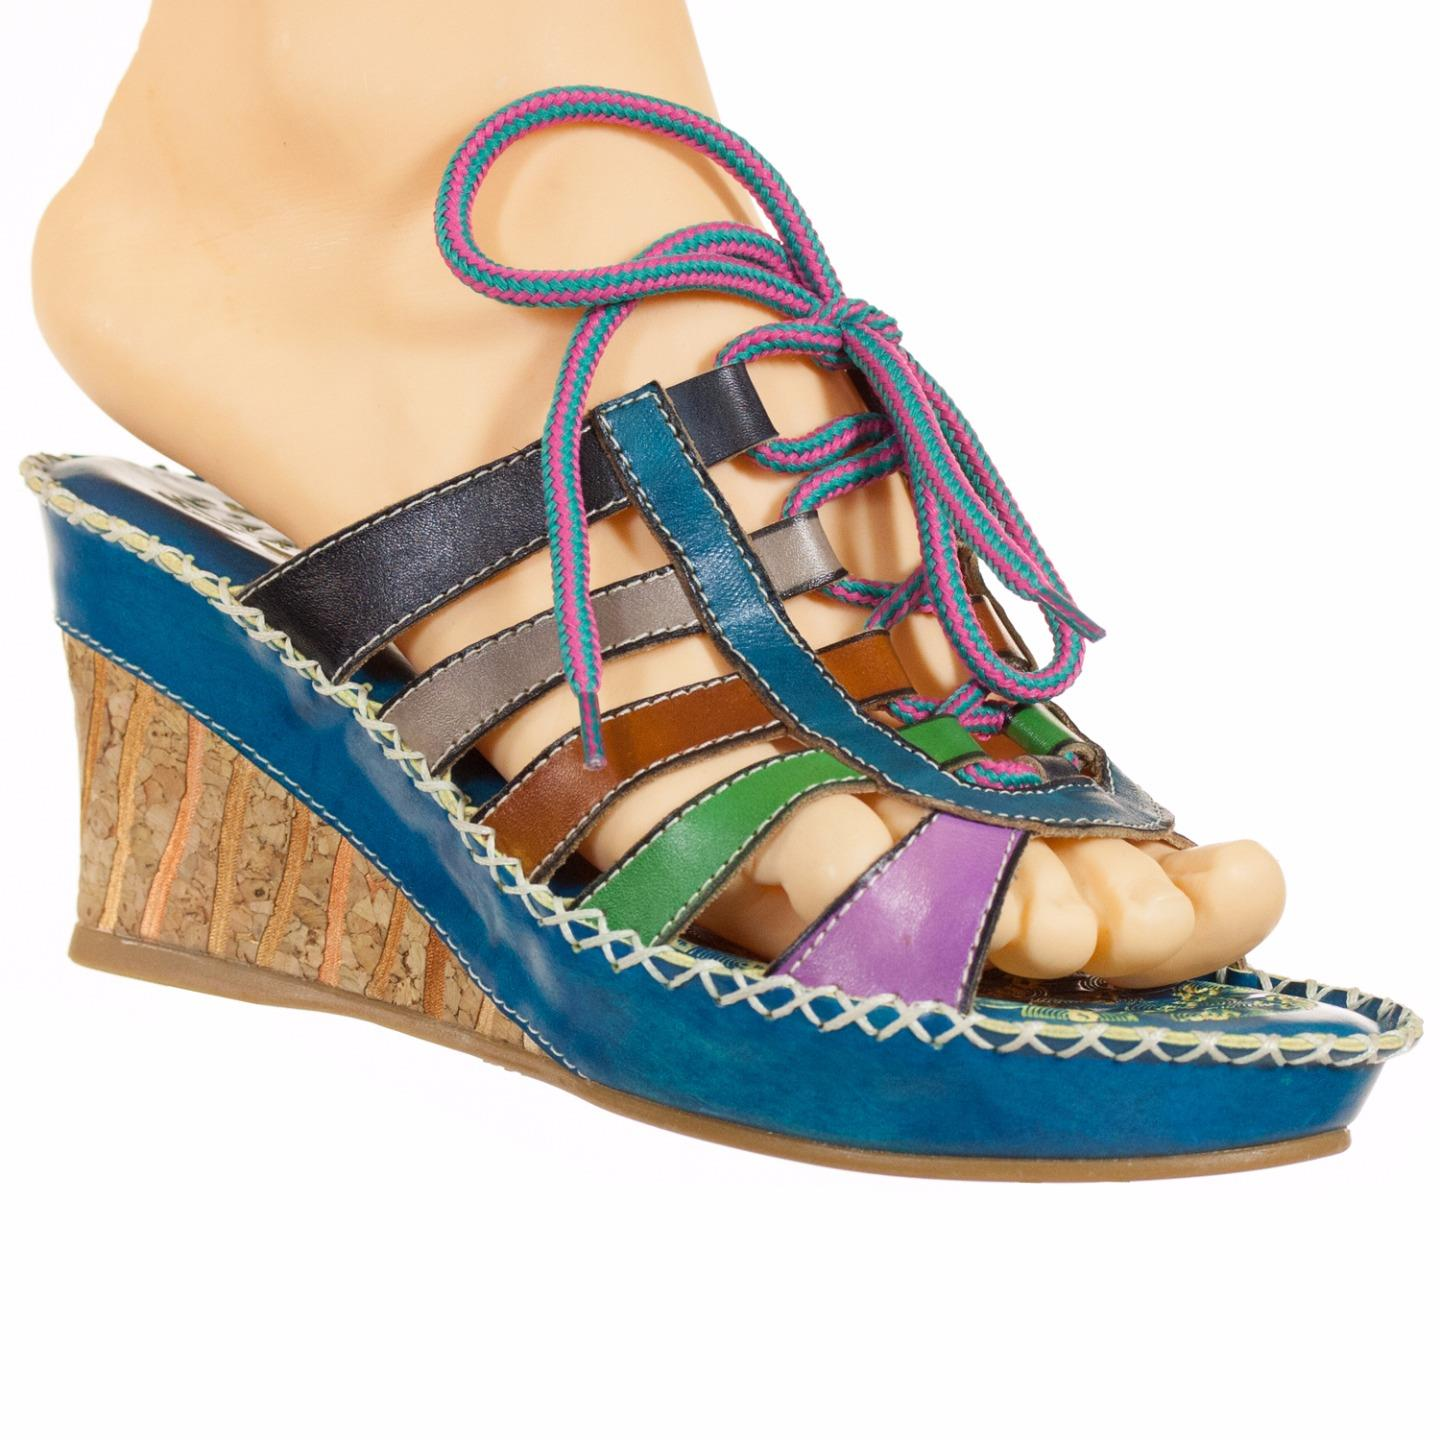 L'Artiste By Spring Step Frumuasa Women's Sandals Turquoise Multi EU 37 US 7 by Spring Step